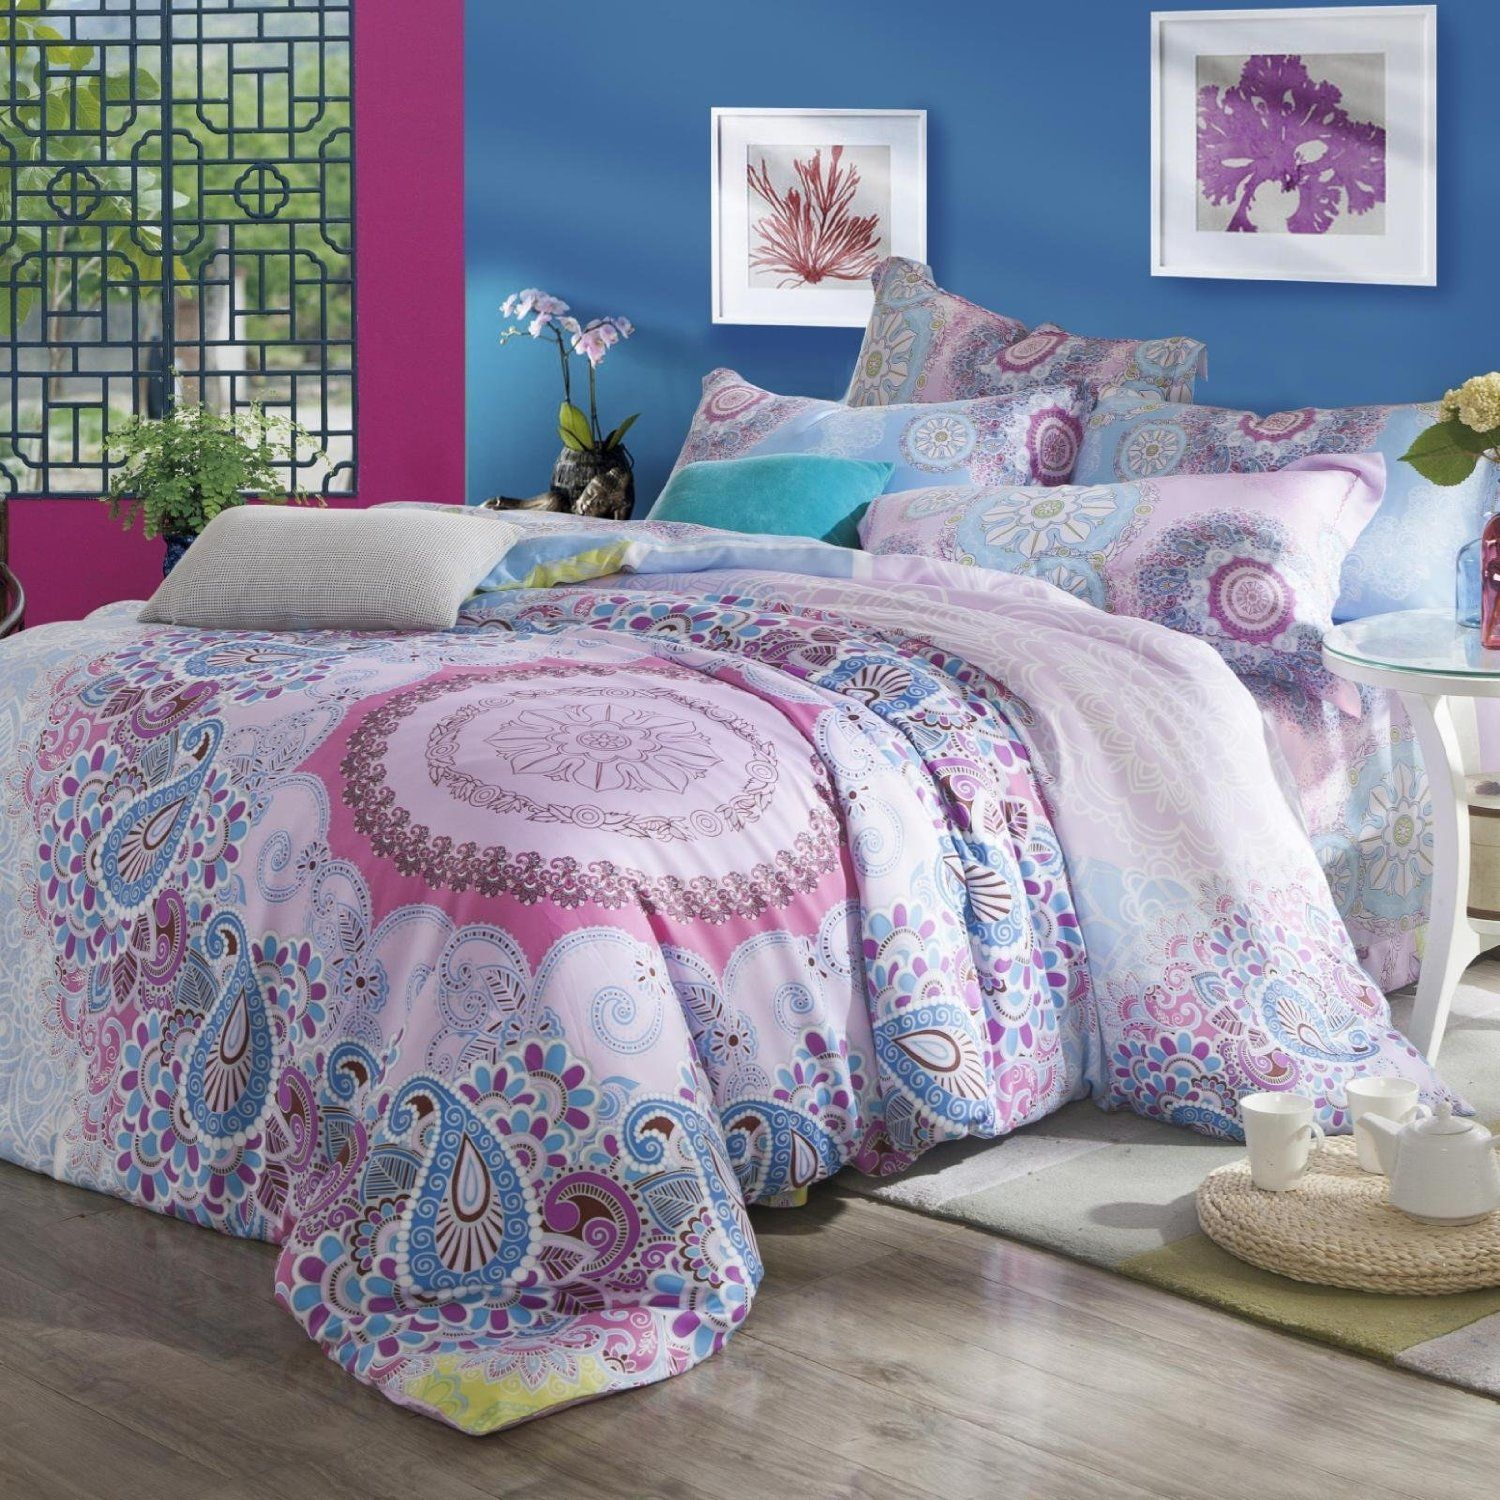 Beautiful Bohemian Comforter With Luxury Colors For